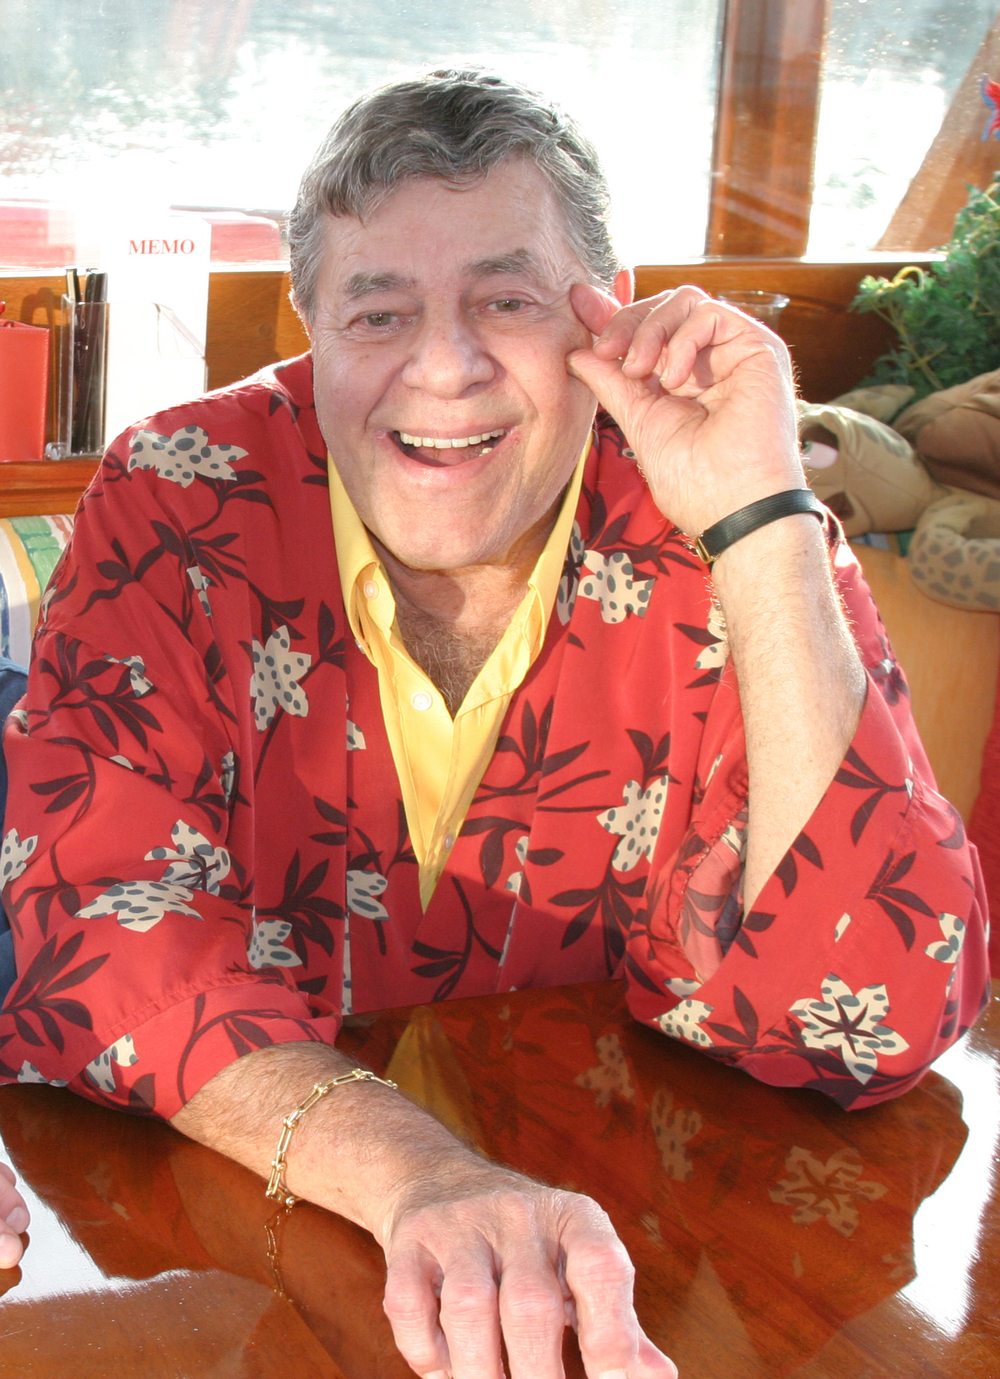 Jerry_Lewis_2005_by_Patty_Mooney.jpg